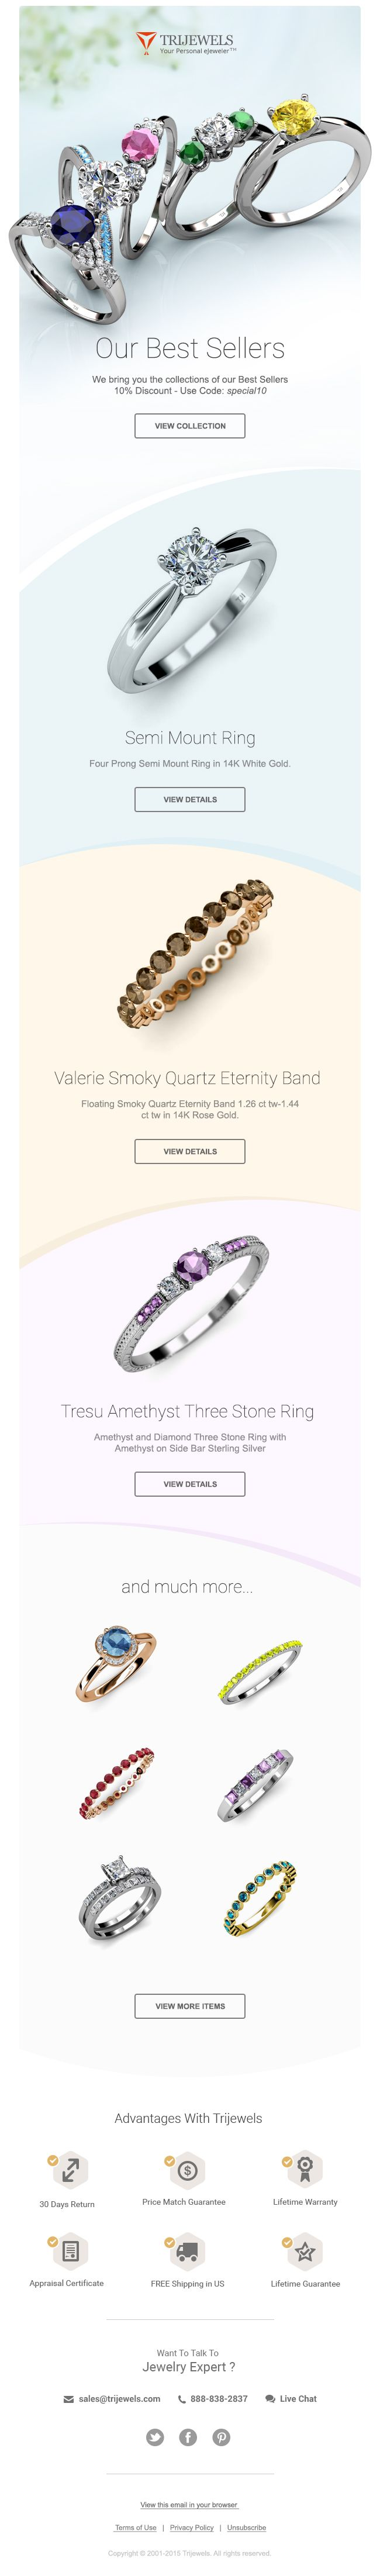 Promotional Email Design for online Jewelry store - by M khalid